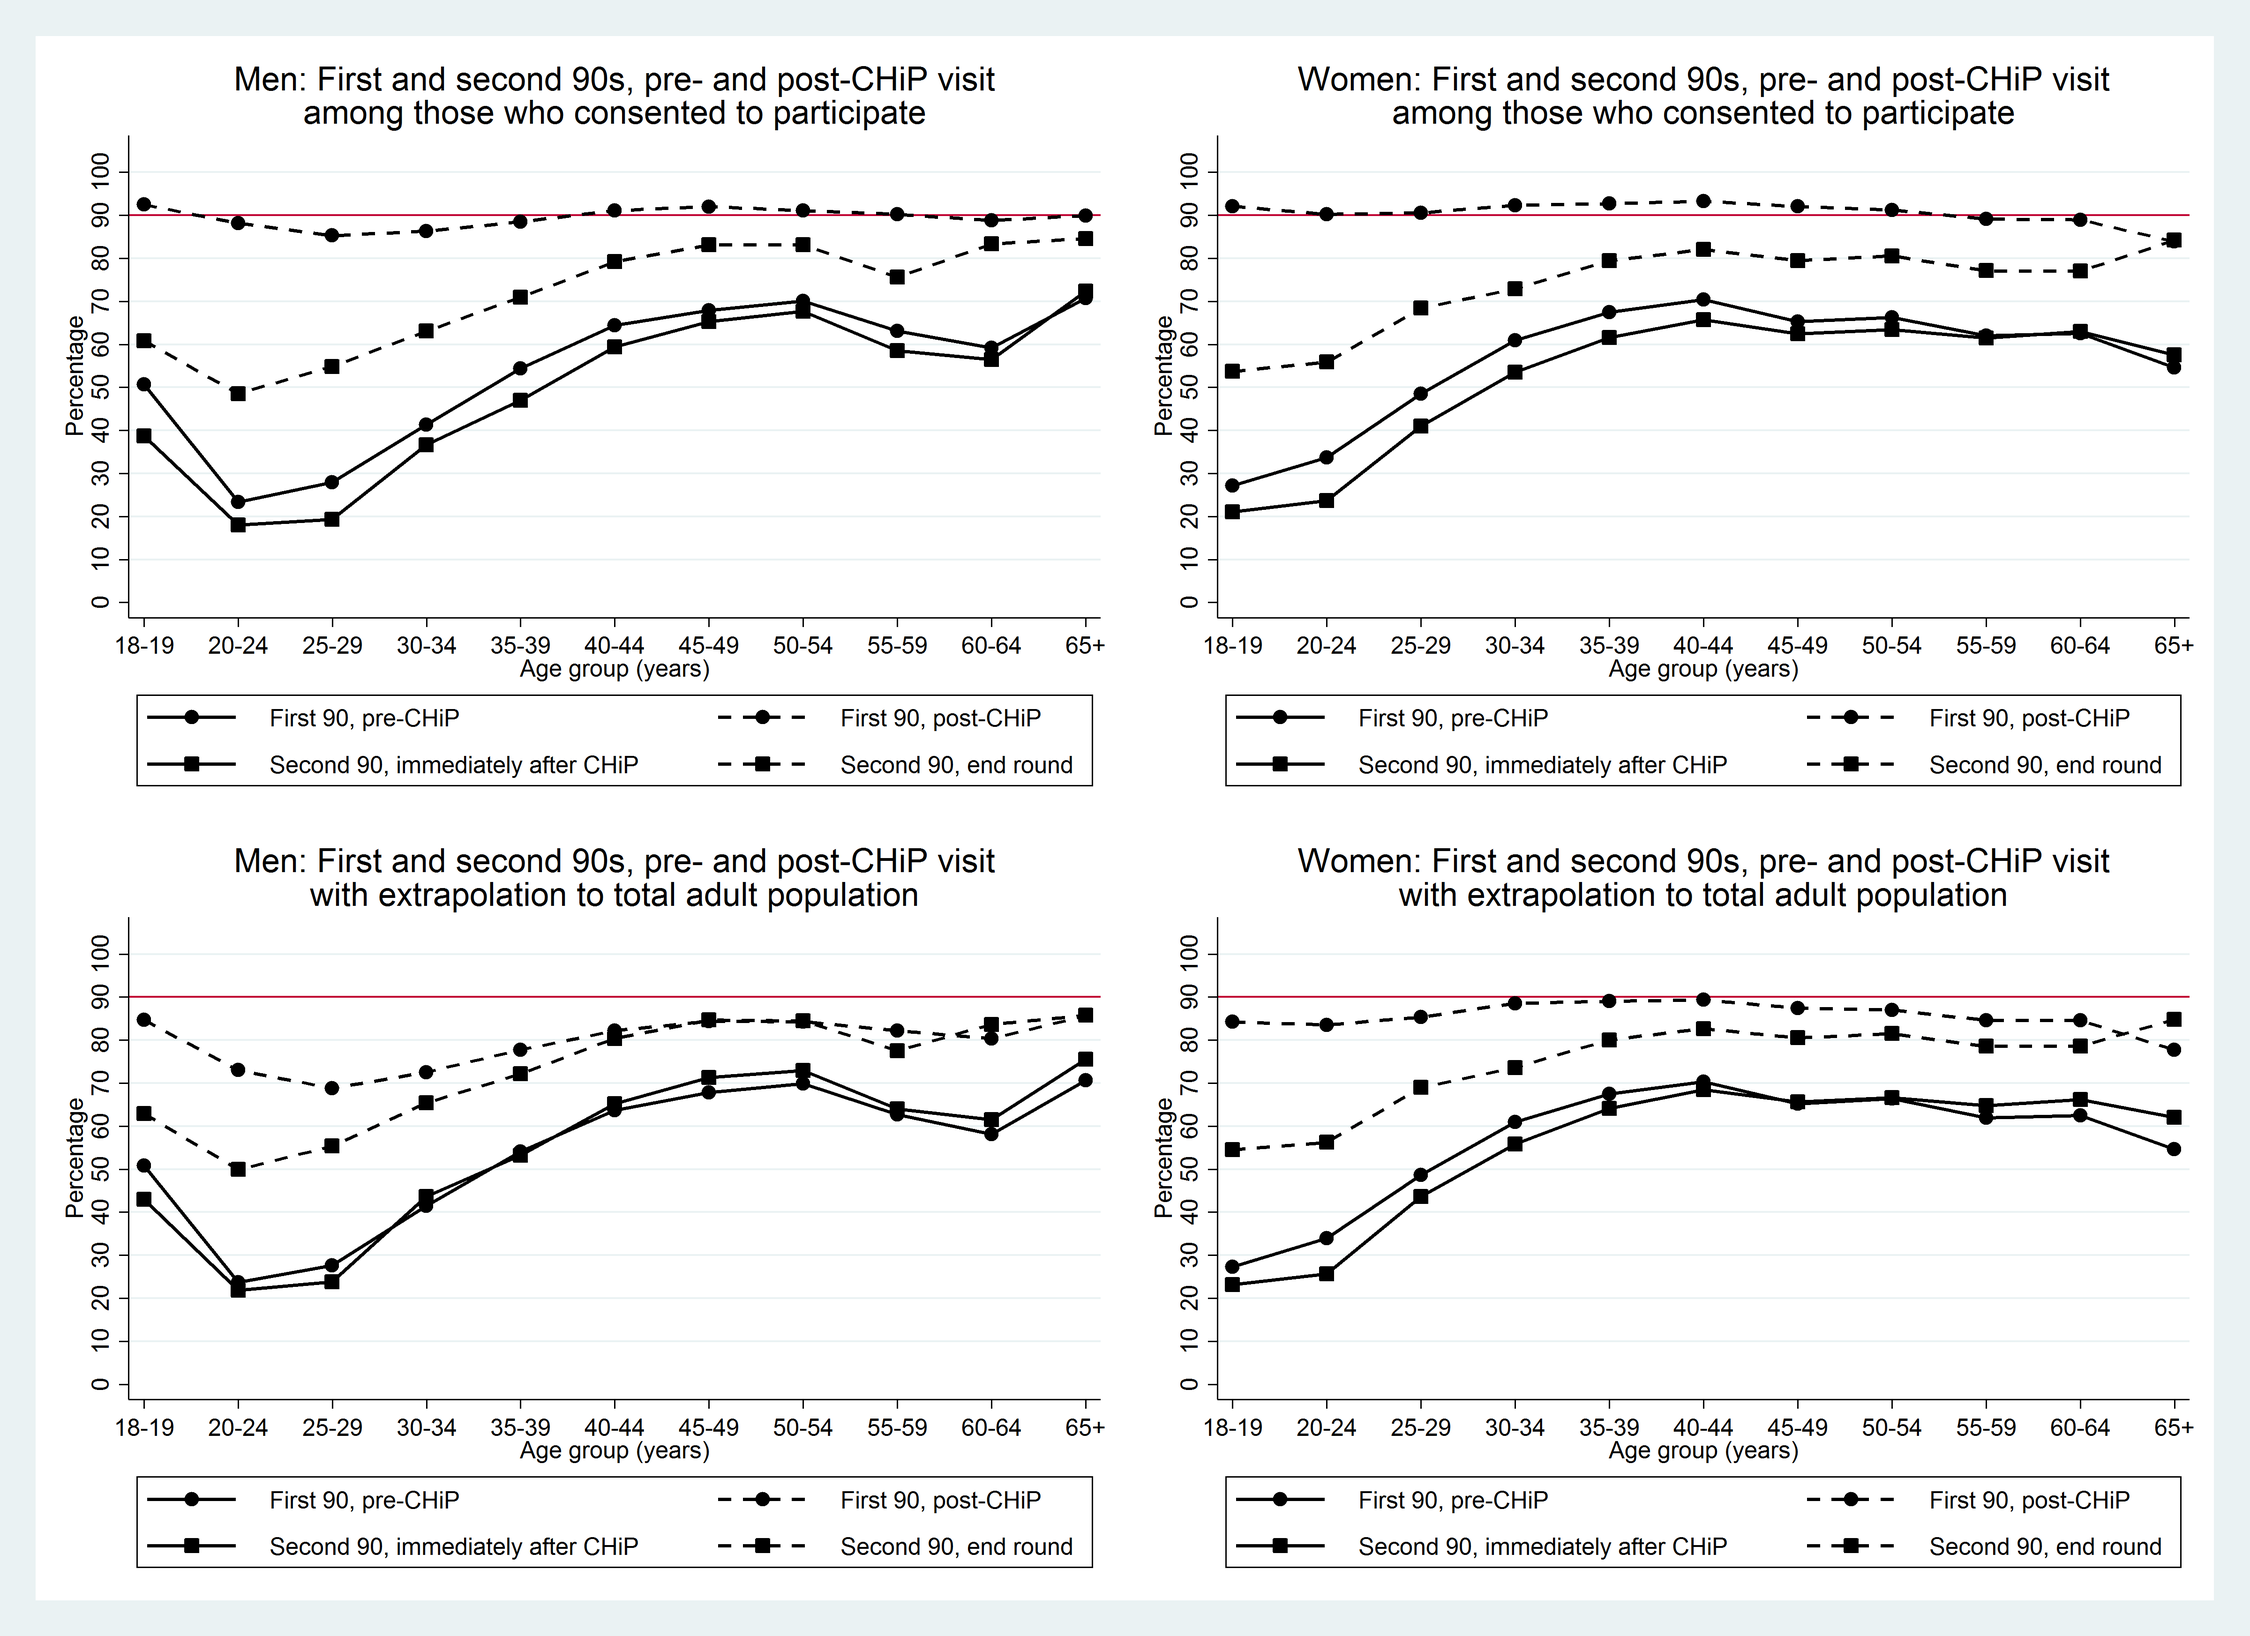 First two 90 target estimates by sex and age group in those consenting to the PopART intervention and extrapolated to the total adult population.